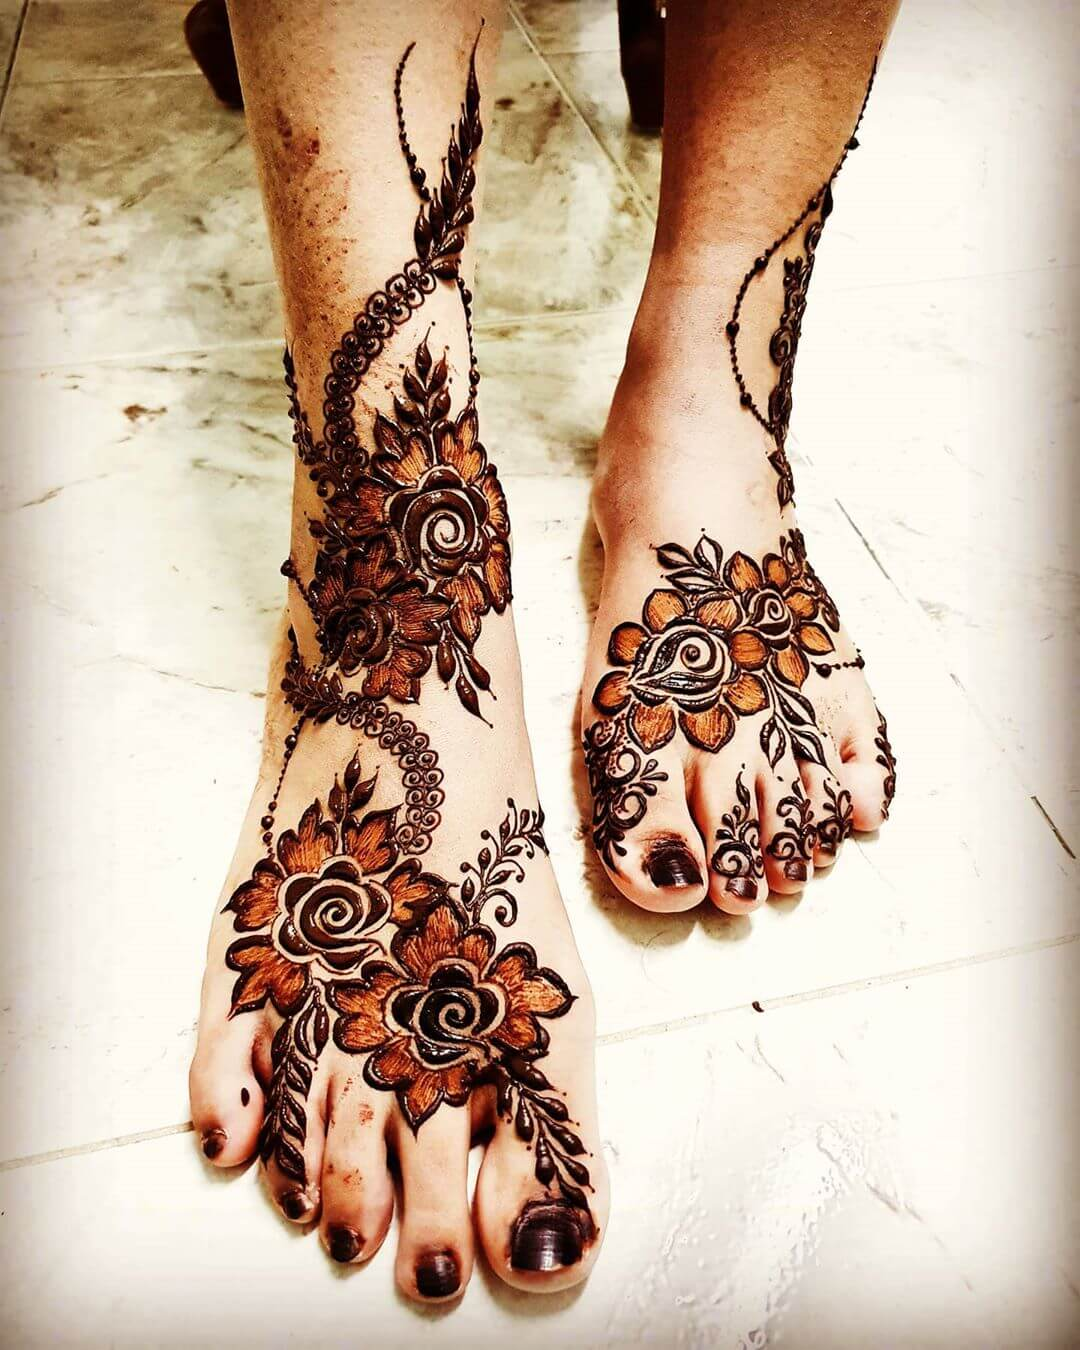 Swirling around with Roses Mehendi designs for Feet